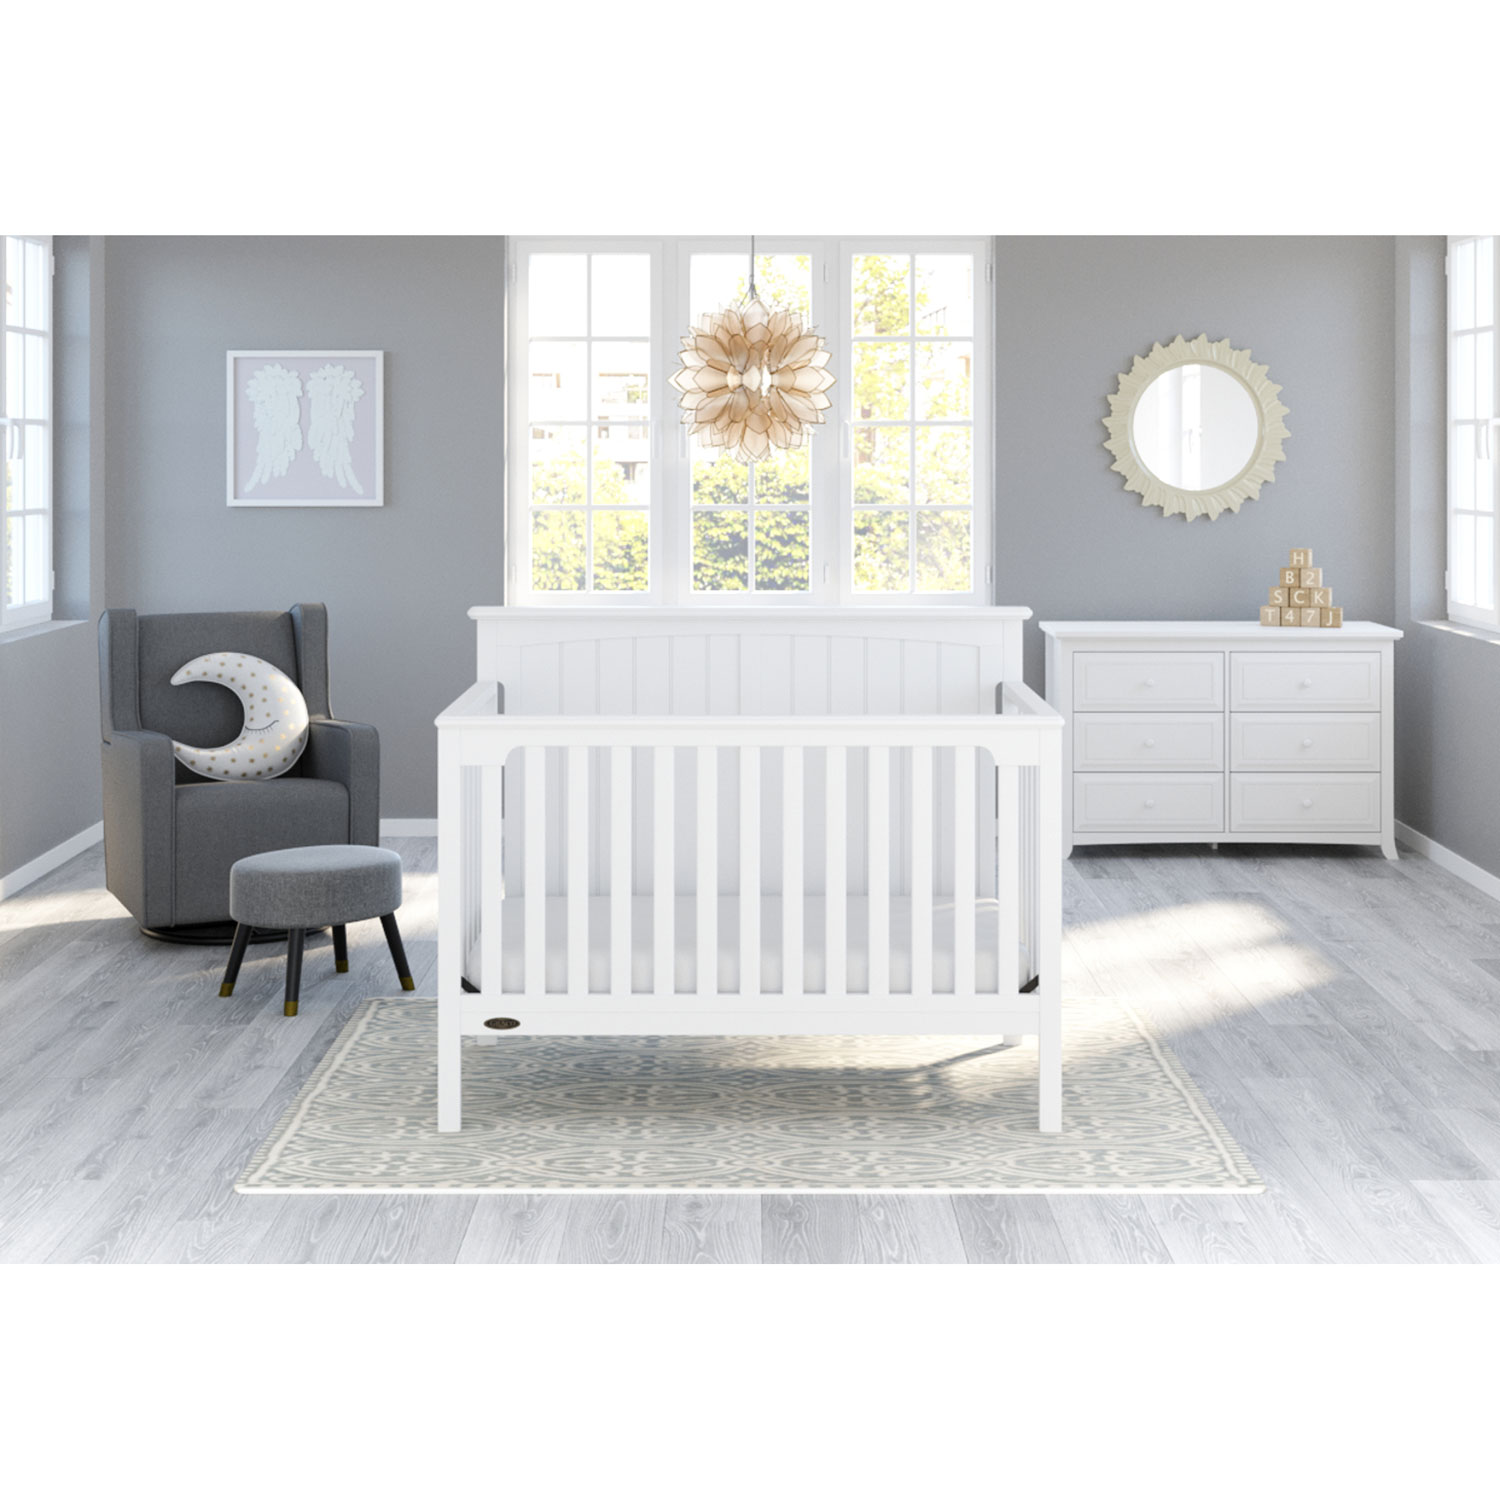 Graco Jordan 4 In 1 Convertible Crib White Only At Best Buy Best Buy Canada